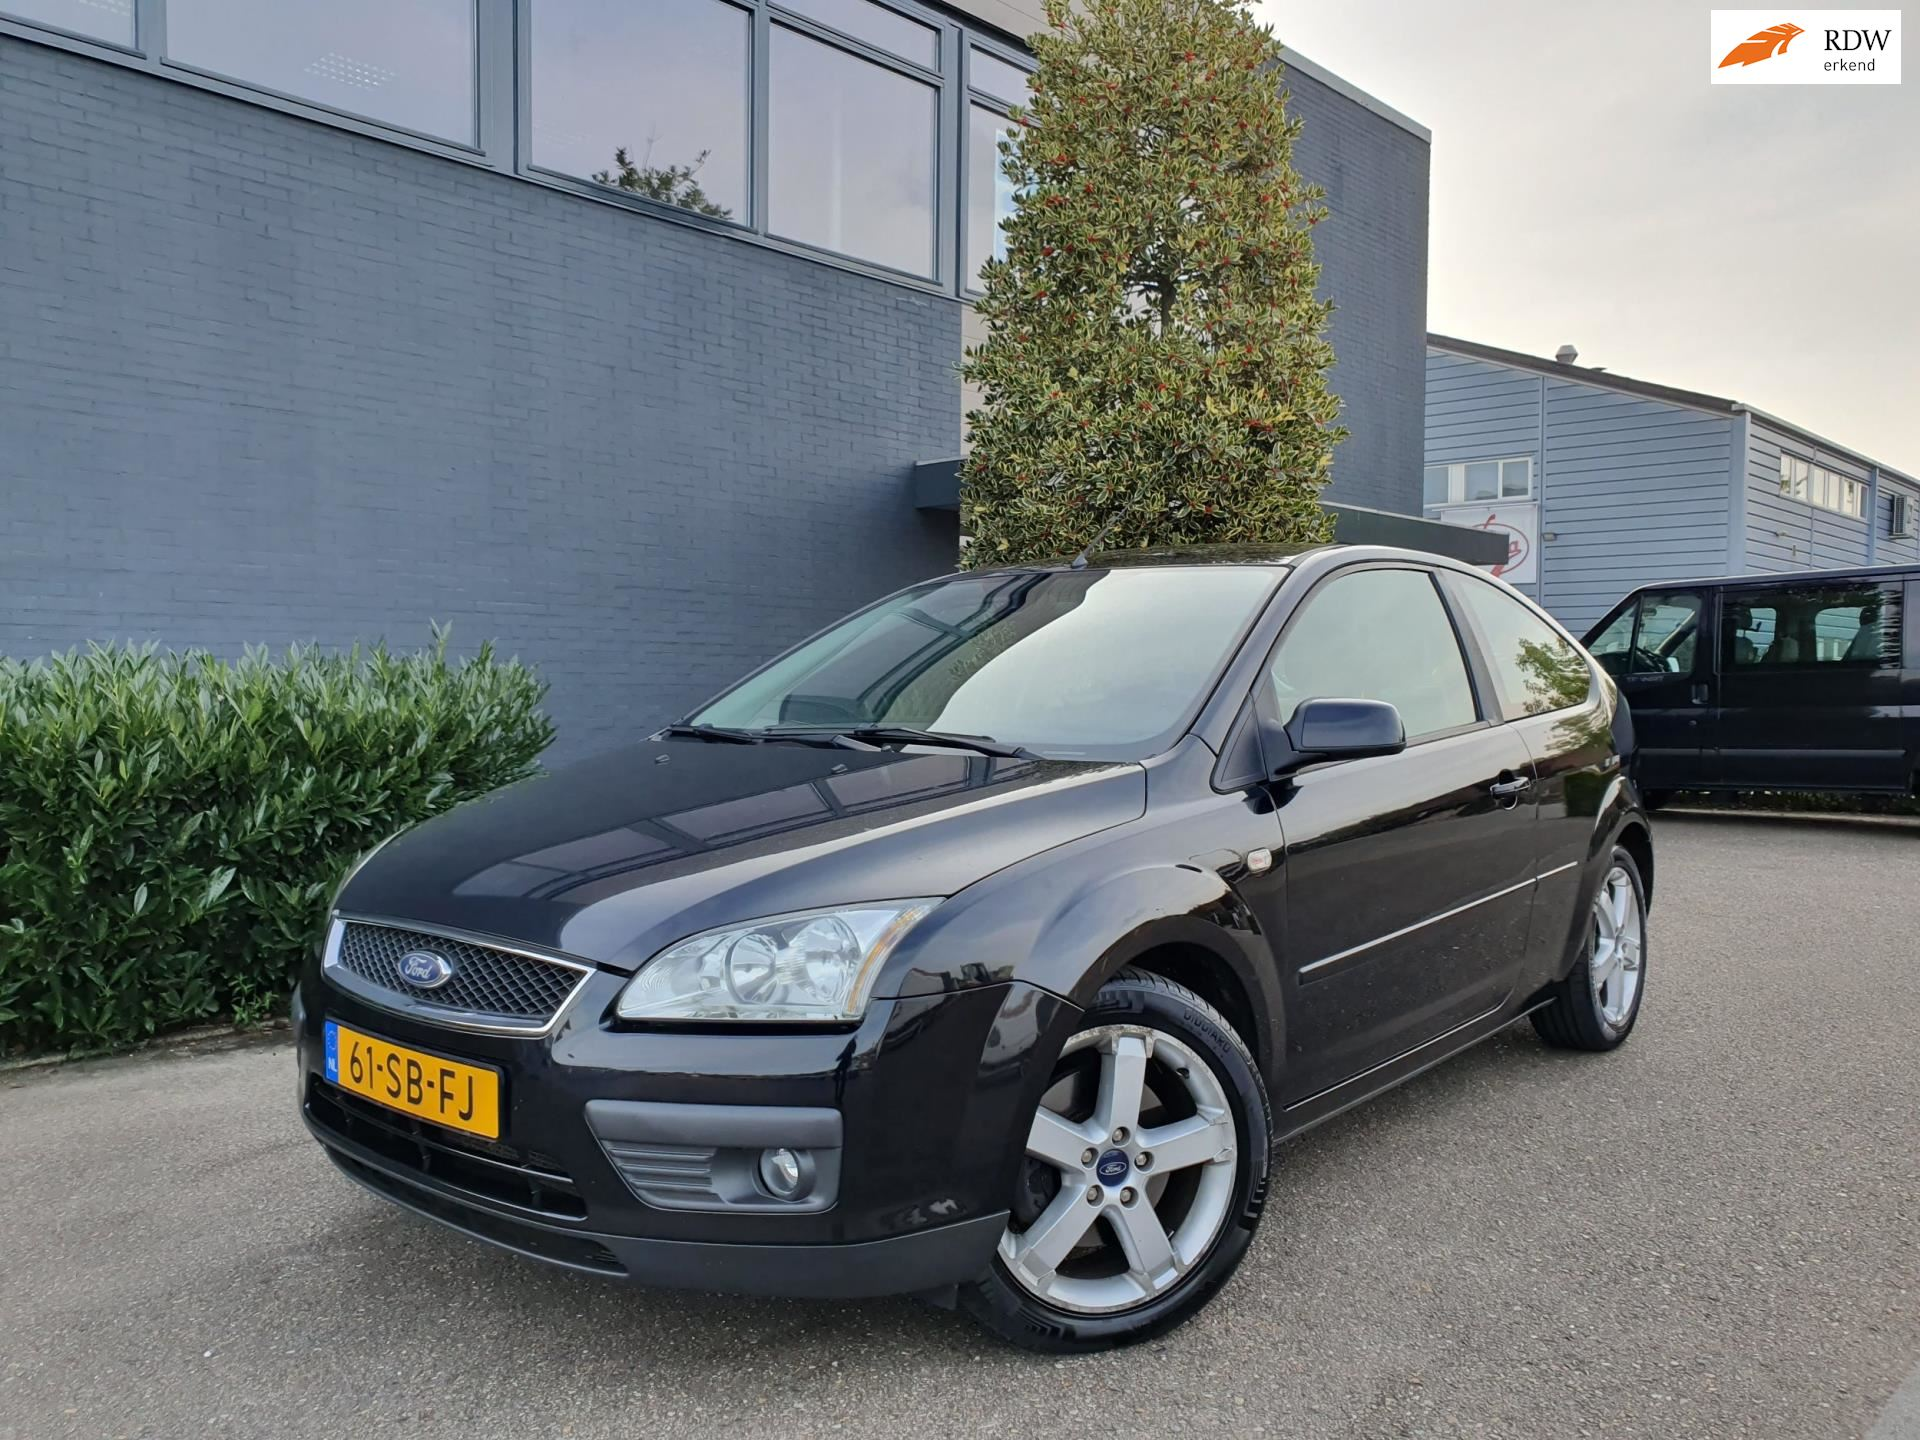 Ford Focus occasion - Autohandel Direct